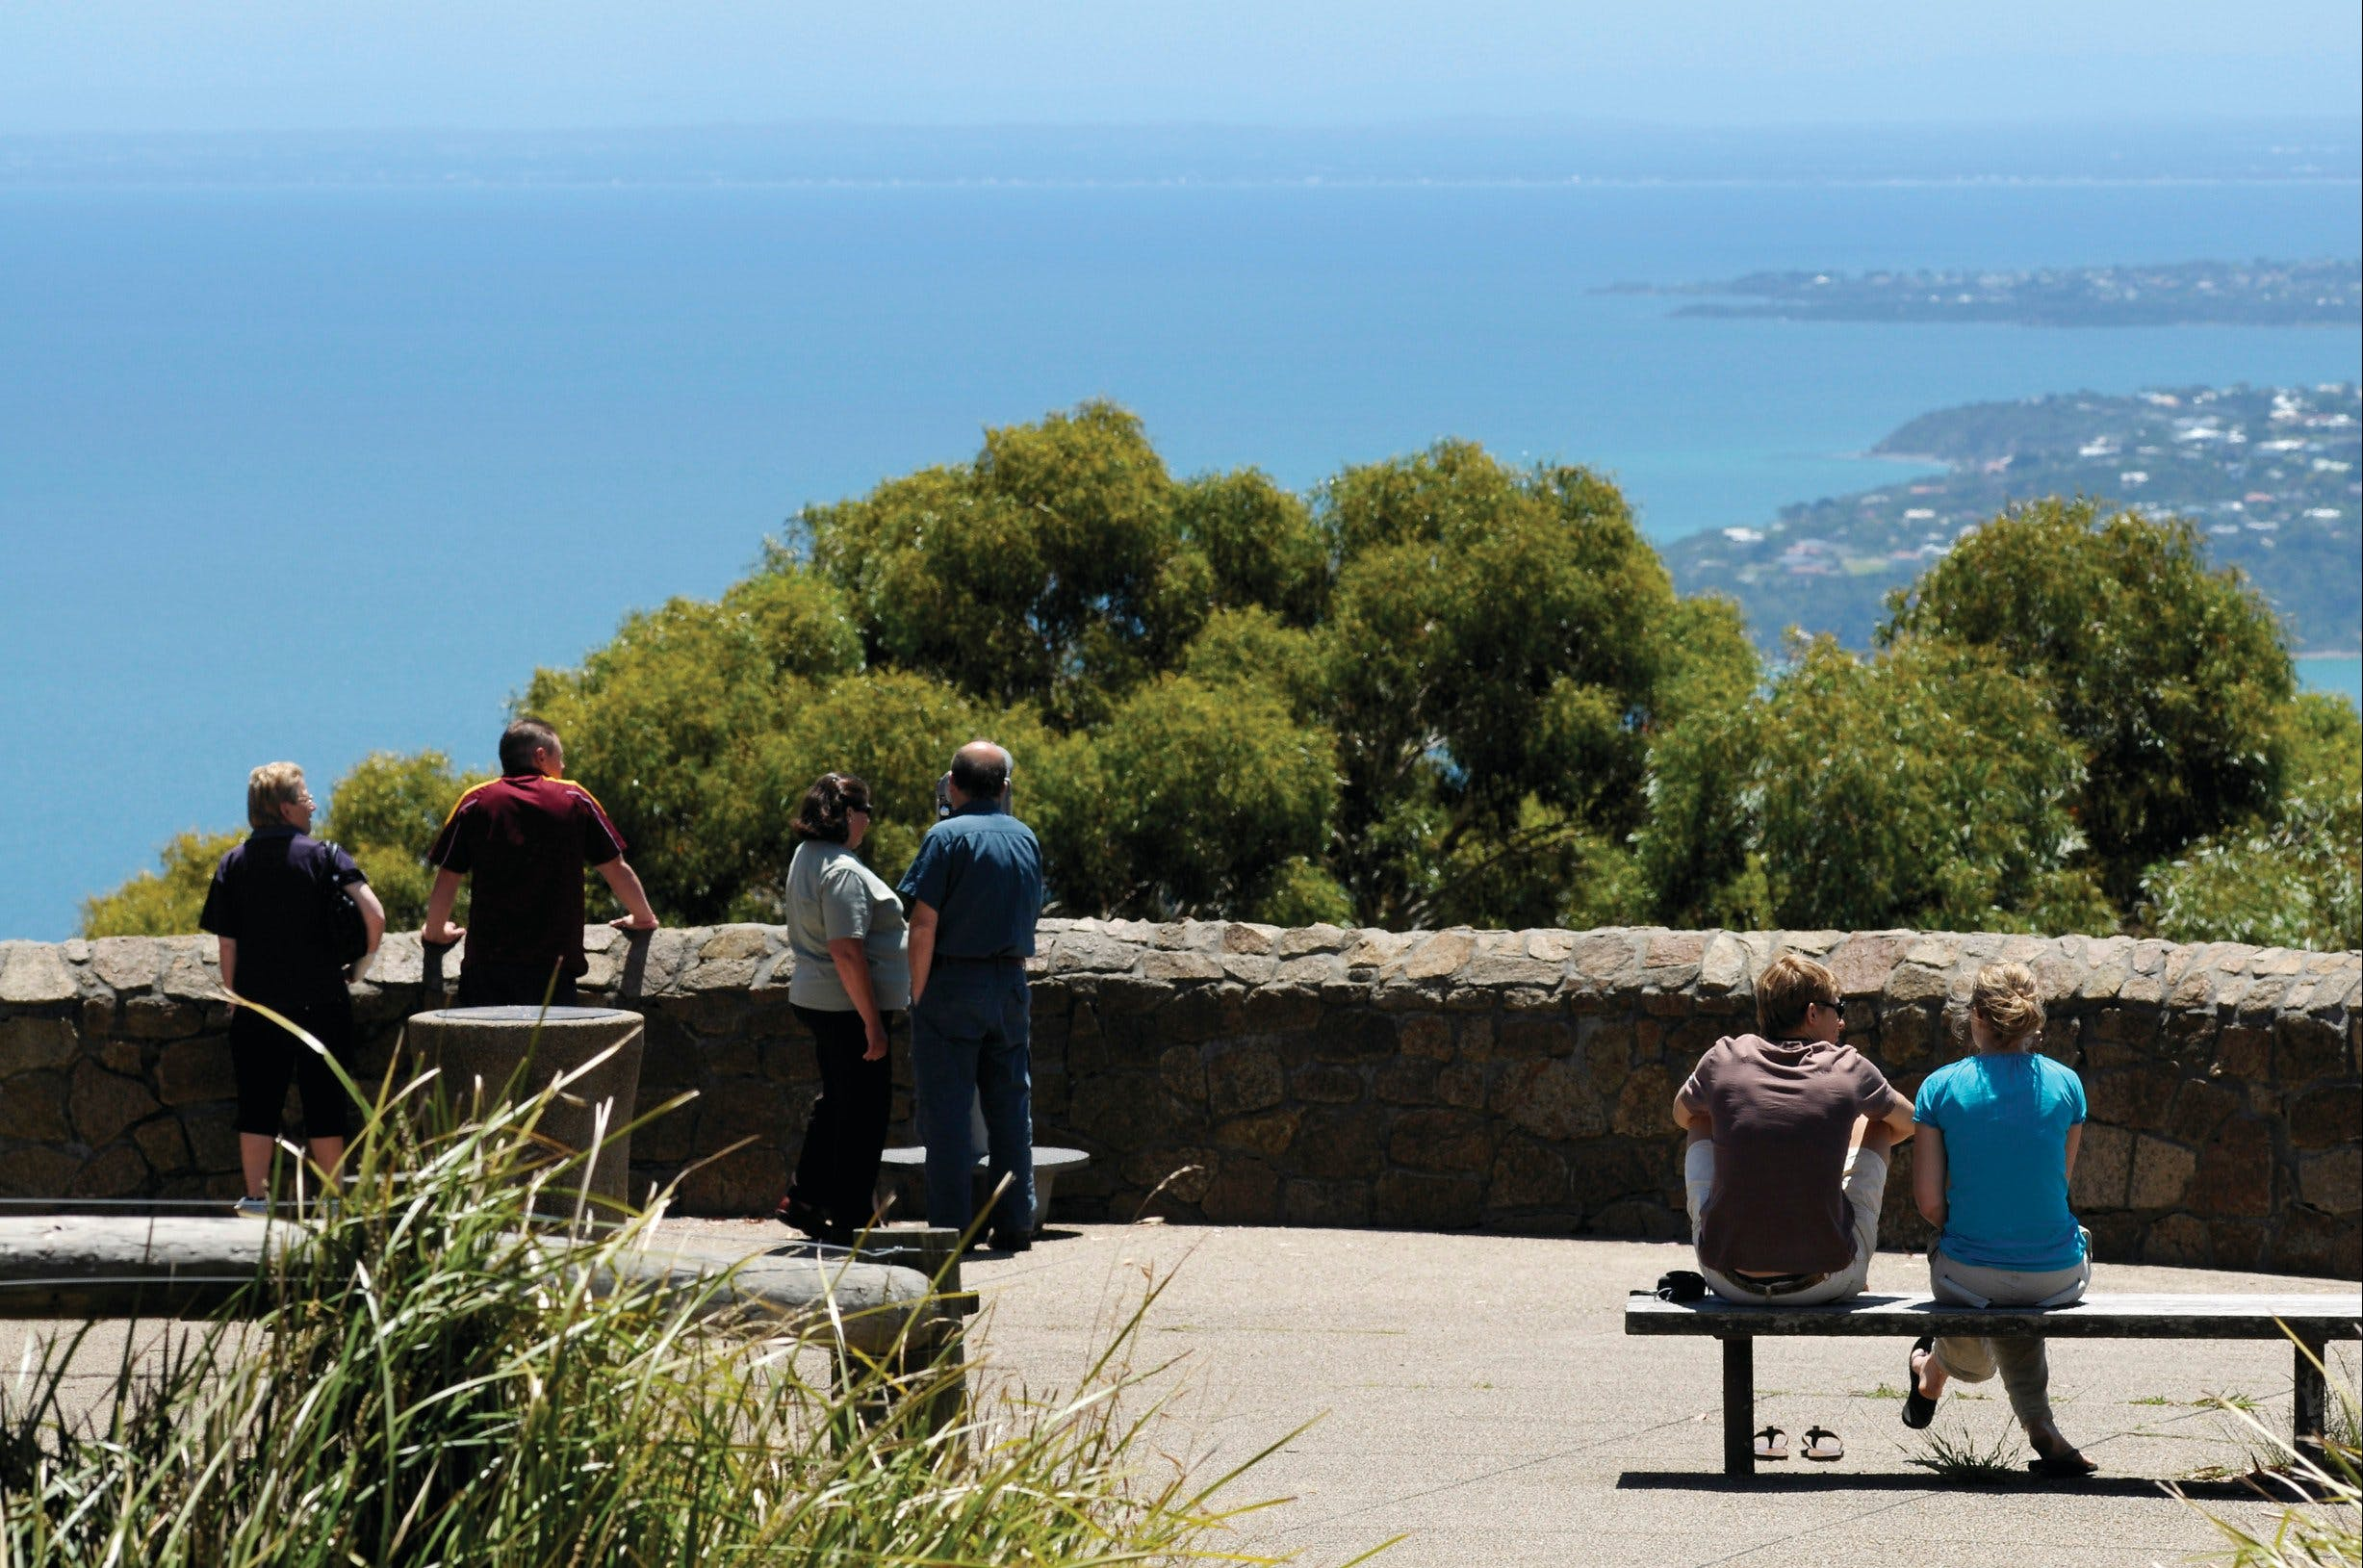 Arthurs Seat State Park - Accommodation Burleigh